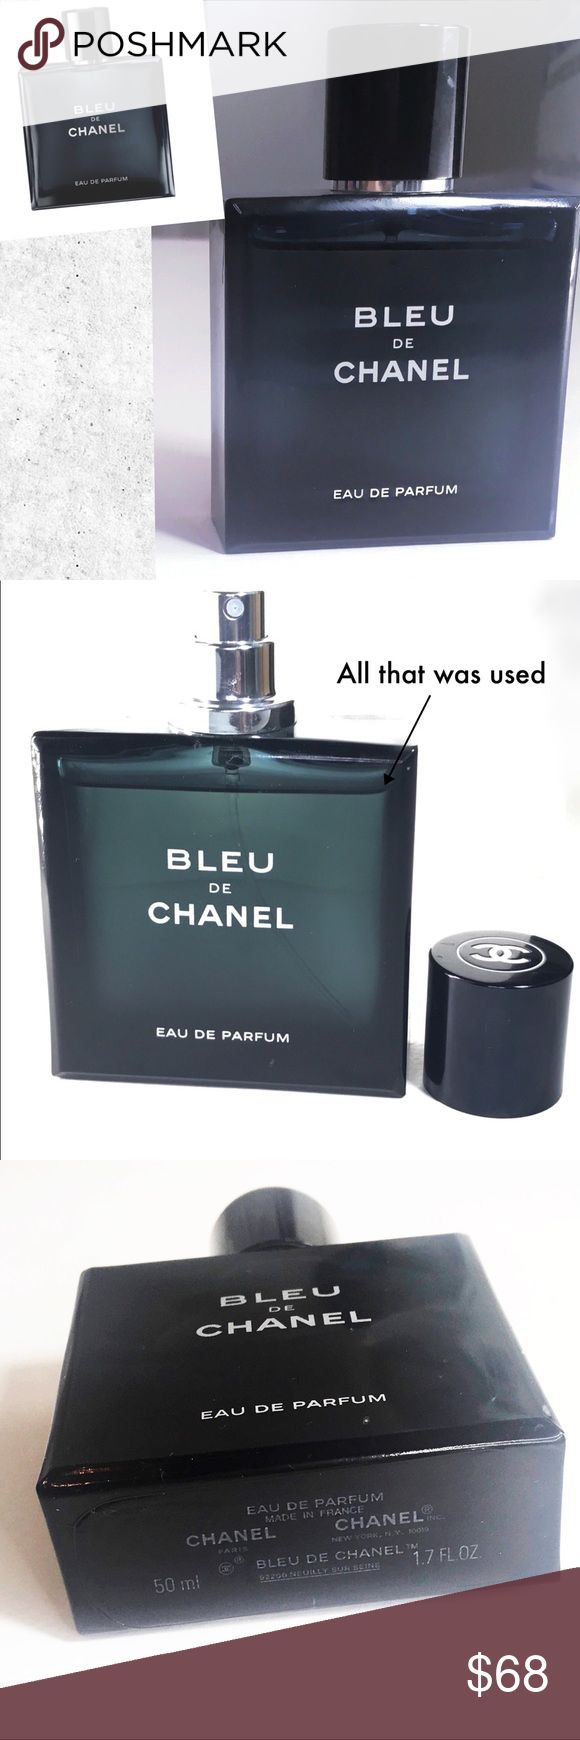 BLEU DE CHANEL EAU DE PARFUM POUR HOMME SPRAY 1.7 Bought this for my boyfriend who is obviously not using it. That's because he has too many colognes and I don't want this to a waste of money so I'm selling it. I no longer have the box and I can tell you can't tamper with this type of bottle.      COMPOSITION A fresh Citrus accord is immediately is followed by ambery Dry Cedar notes. Woods are amplified by Tonka Bean and Vanilla for heightened sensuality. New Caledonian Sandalwood unfolds…